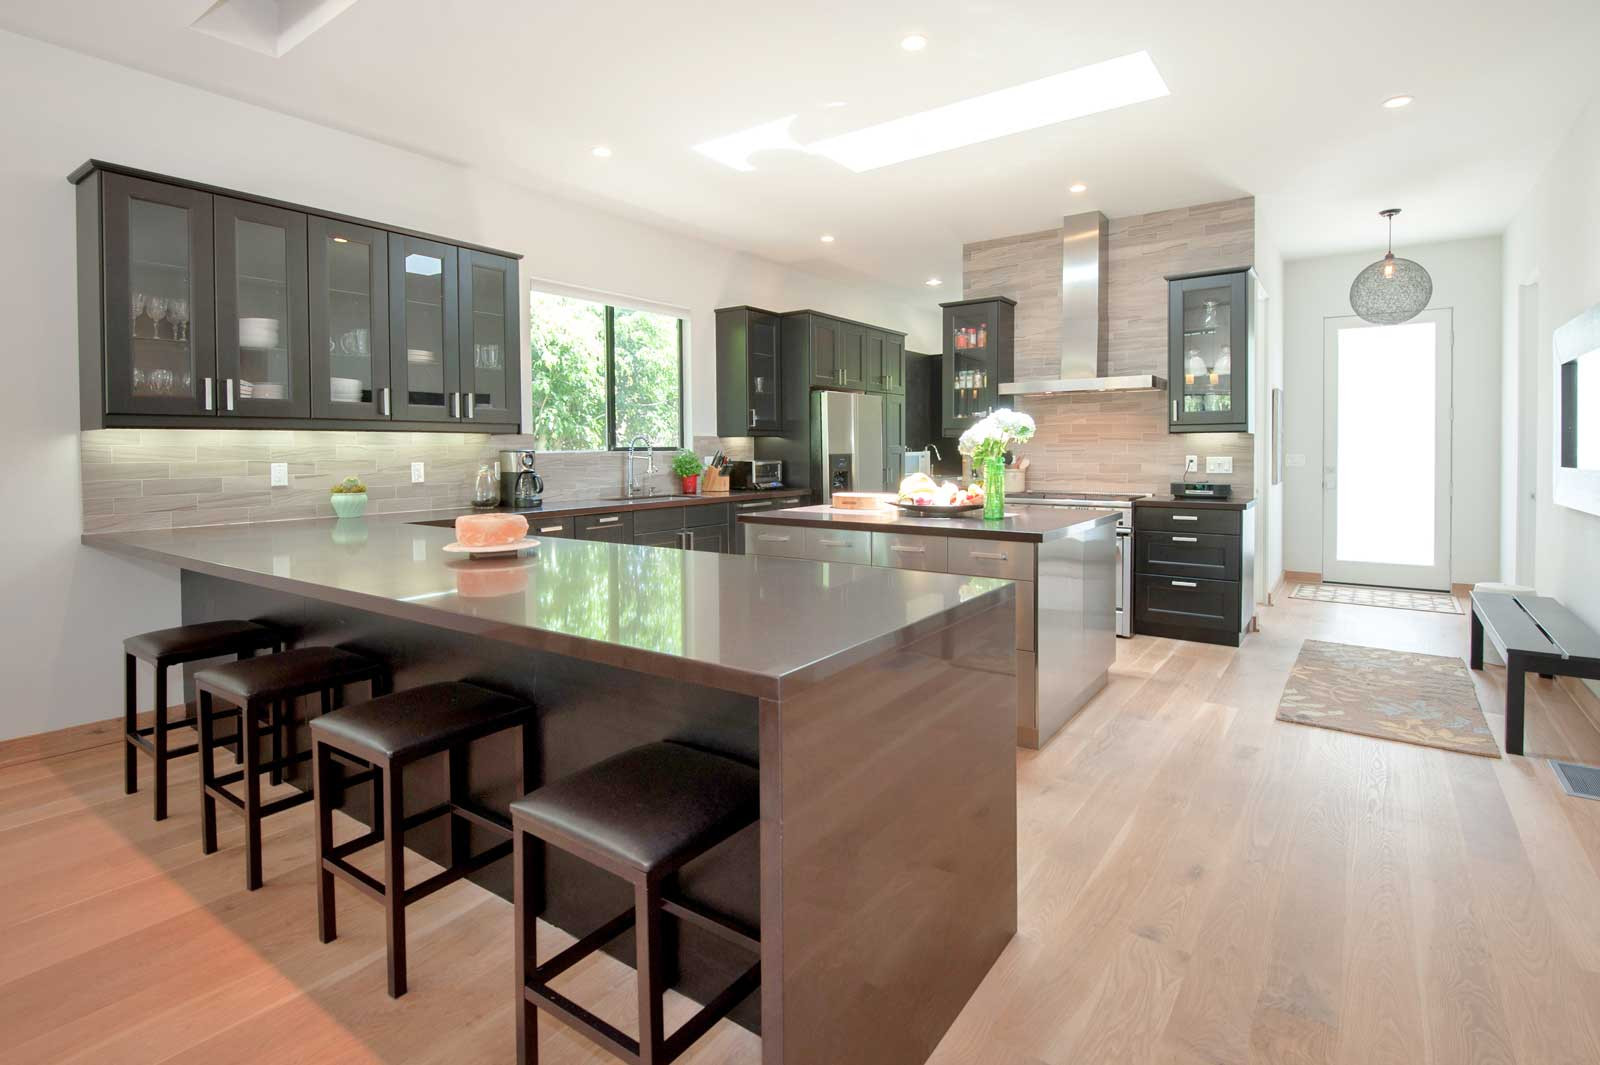 brown-kitchen-1-kilkea.jpg